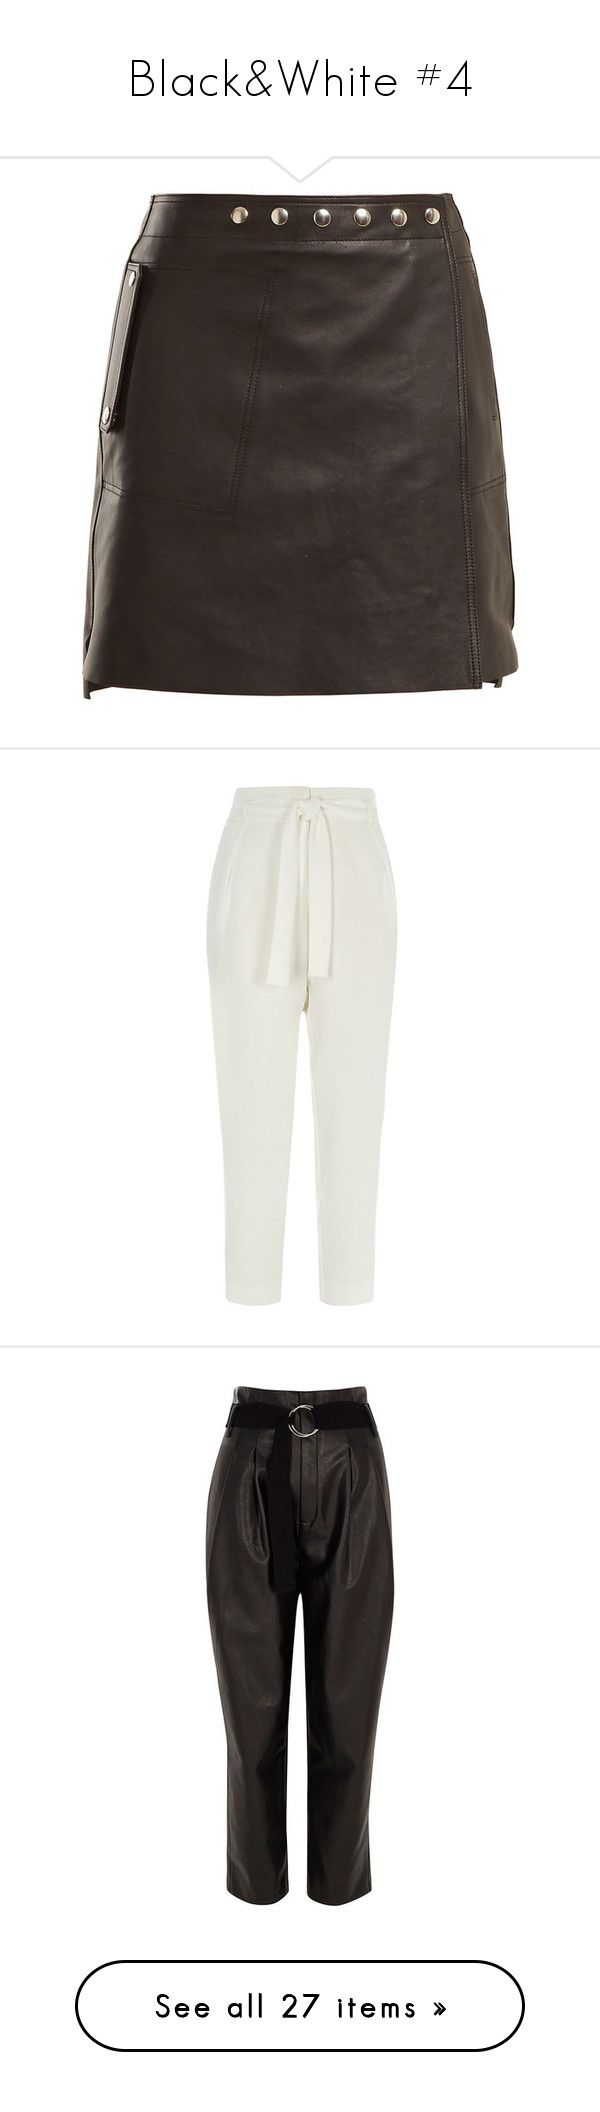 """""""Black&White #4"""" by webuildbridgesnotwalls ❤ liked on Polyvore featuring pants, tapered trousers, white, women, peg leg pants, tall white pants, tapered fit pants, white zipper pants, taper cut pants and black"""